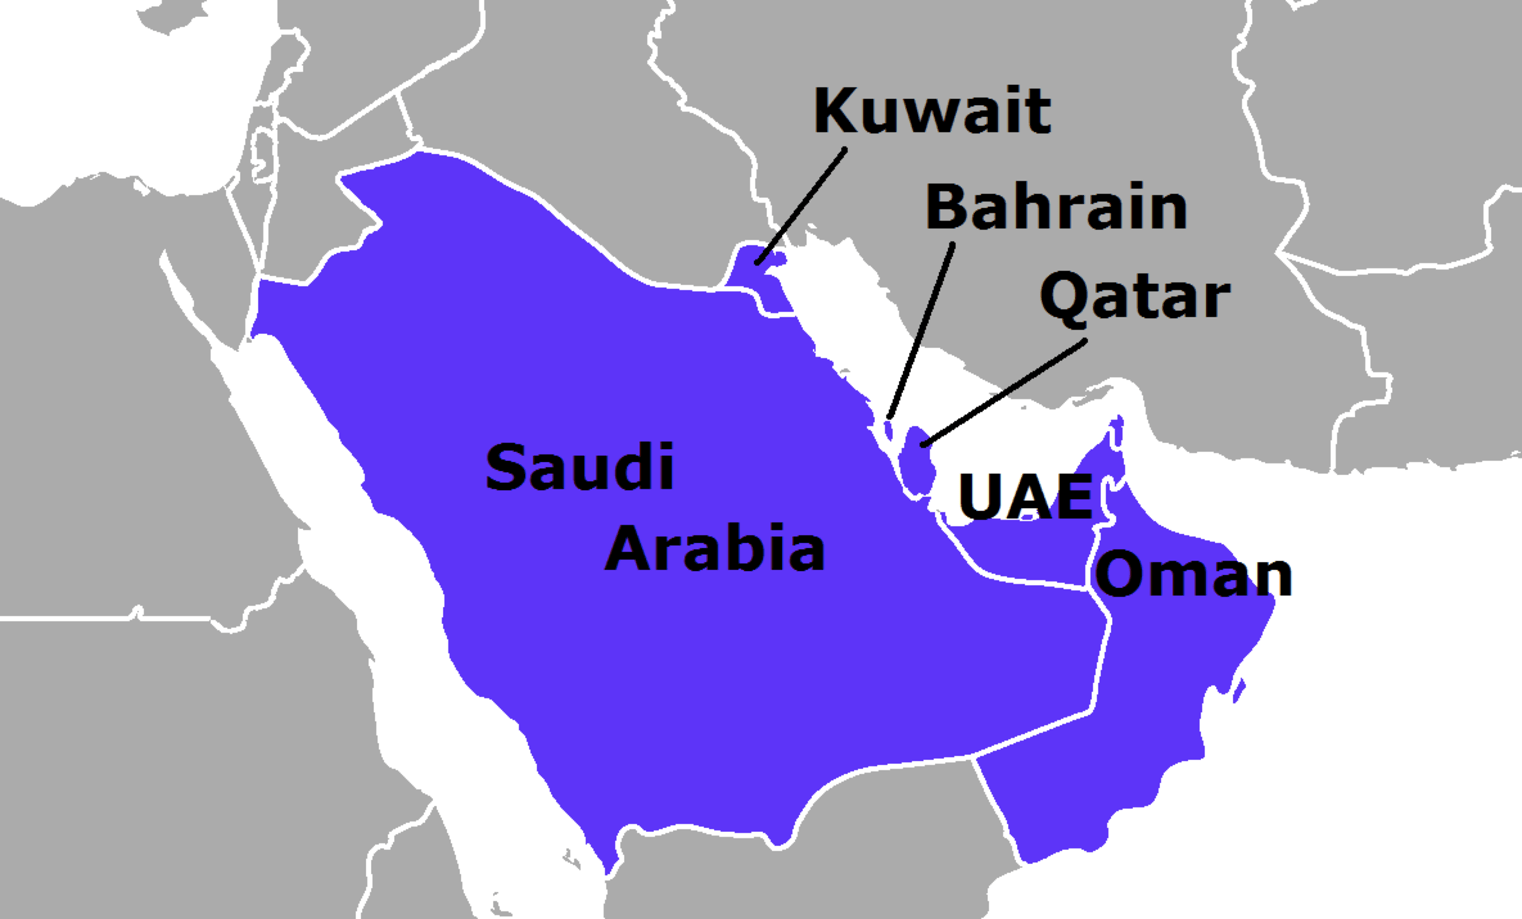 Find products services  businesses from Saudi Arabia UAE